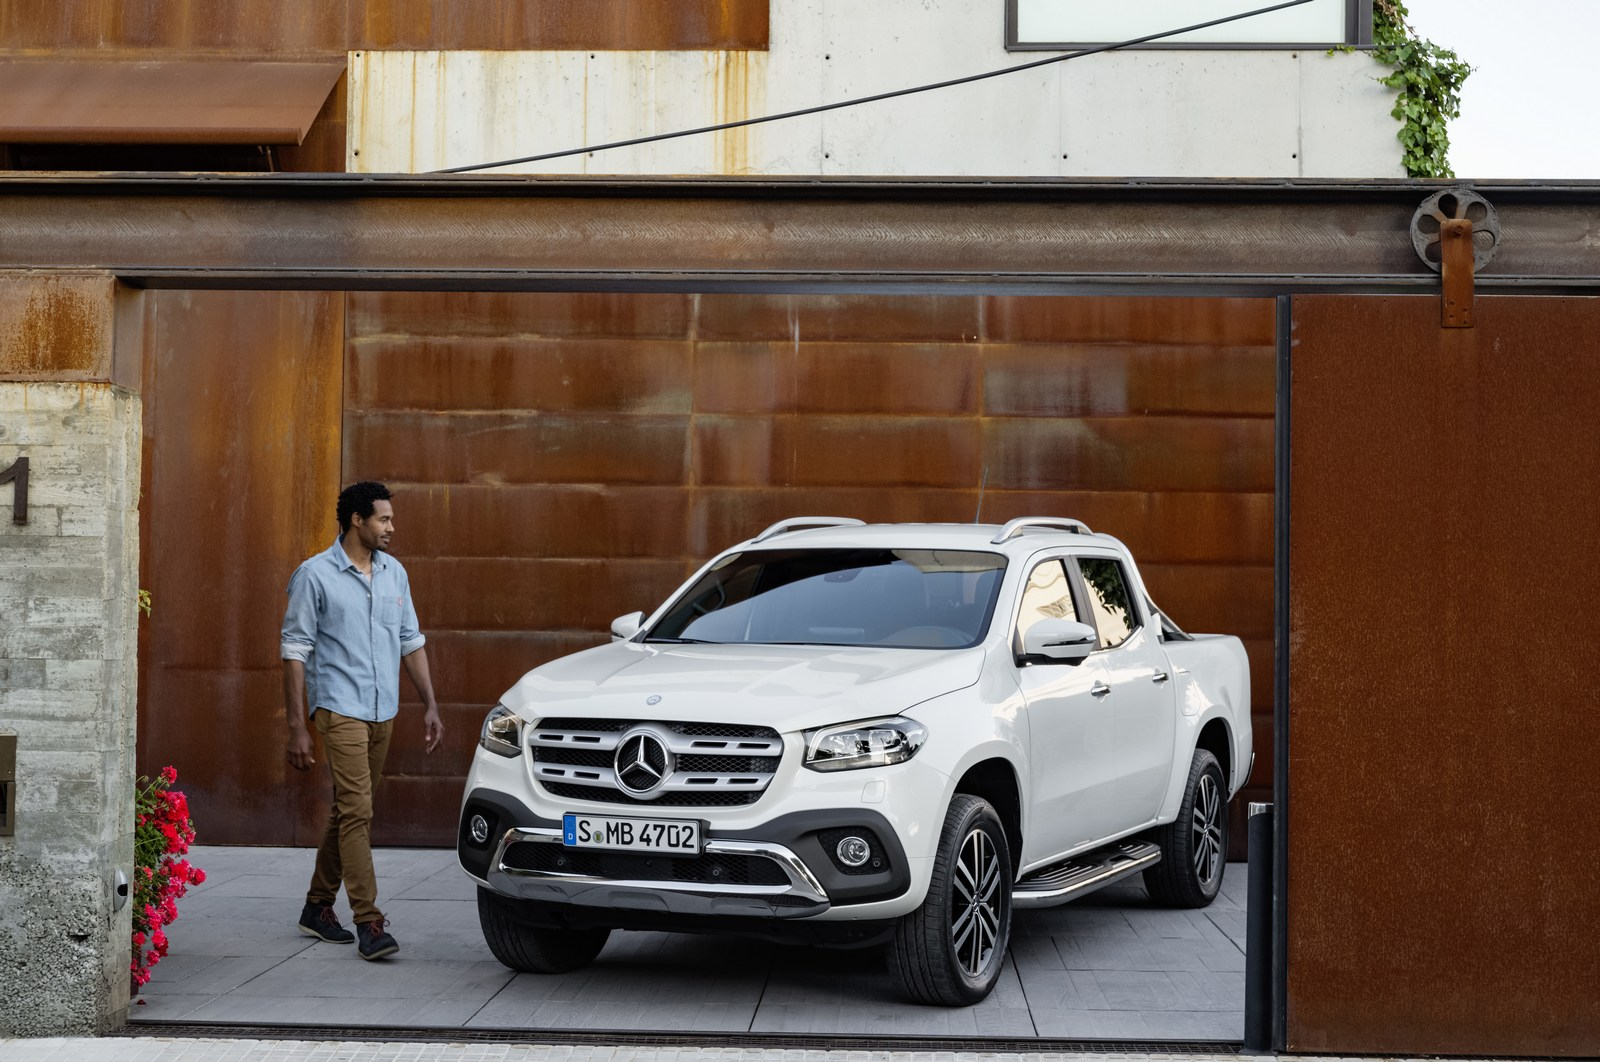 Mercedes-Benz X-Klasse – Exterieur, Beringweiß metallic, Ausstattungslinie POWER 